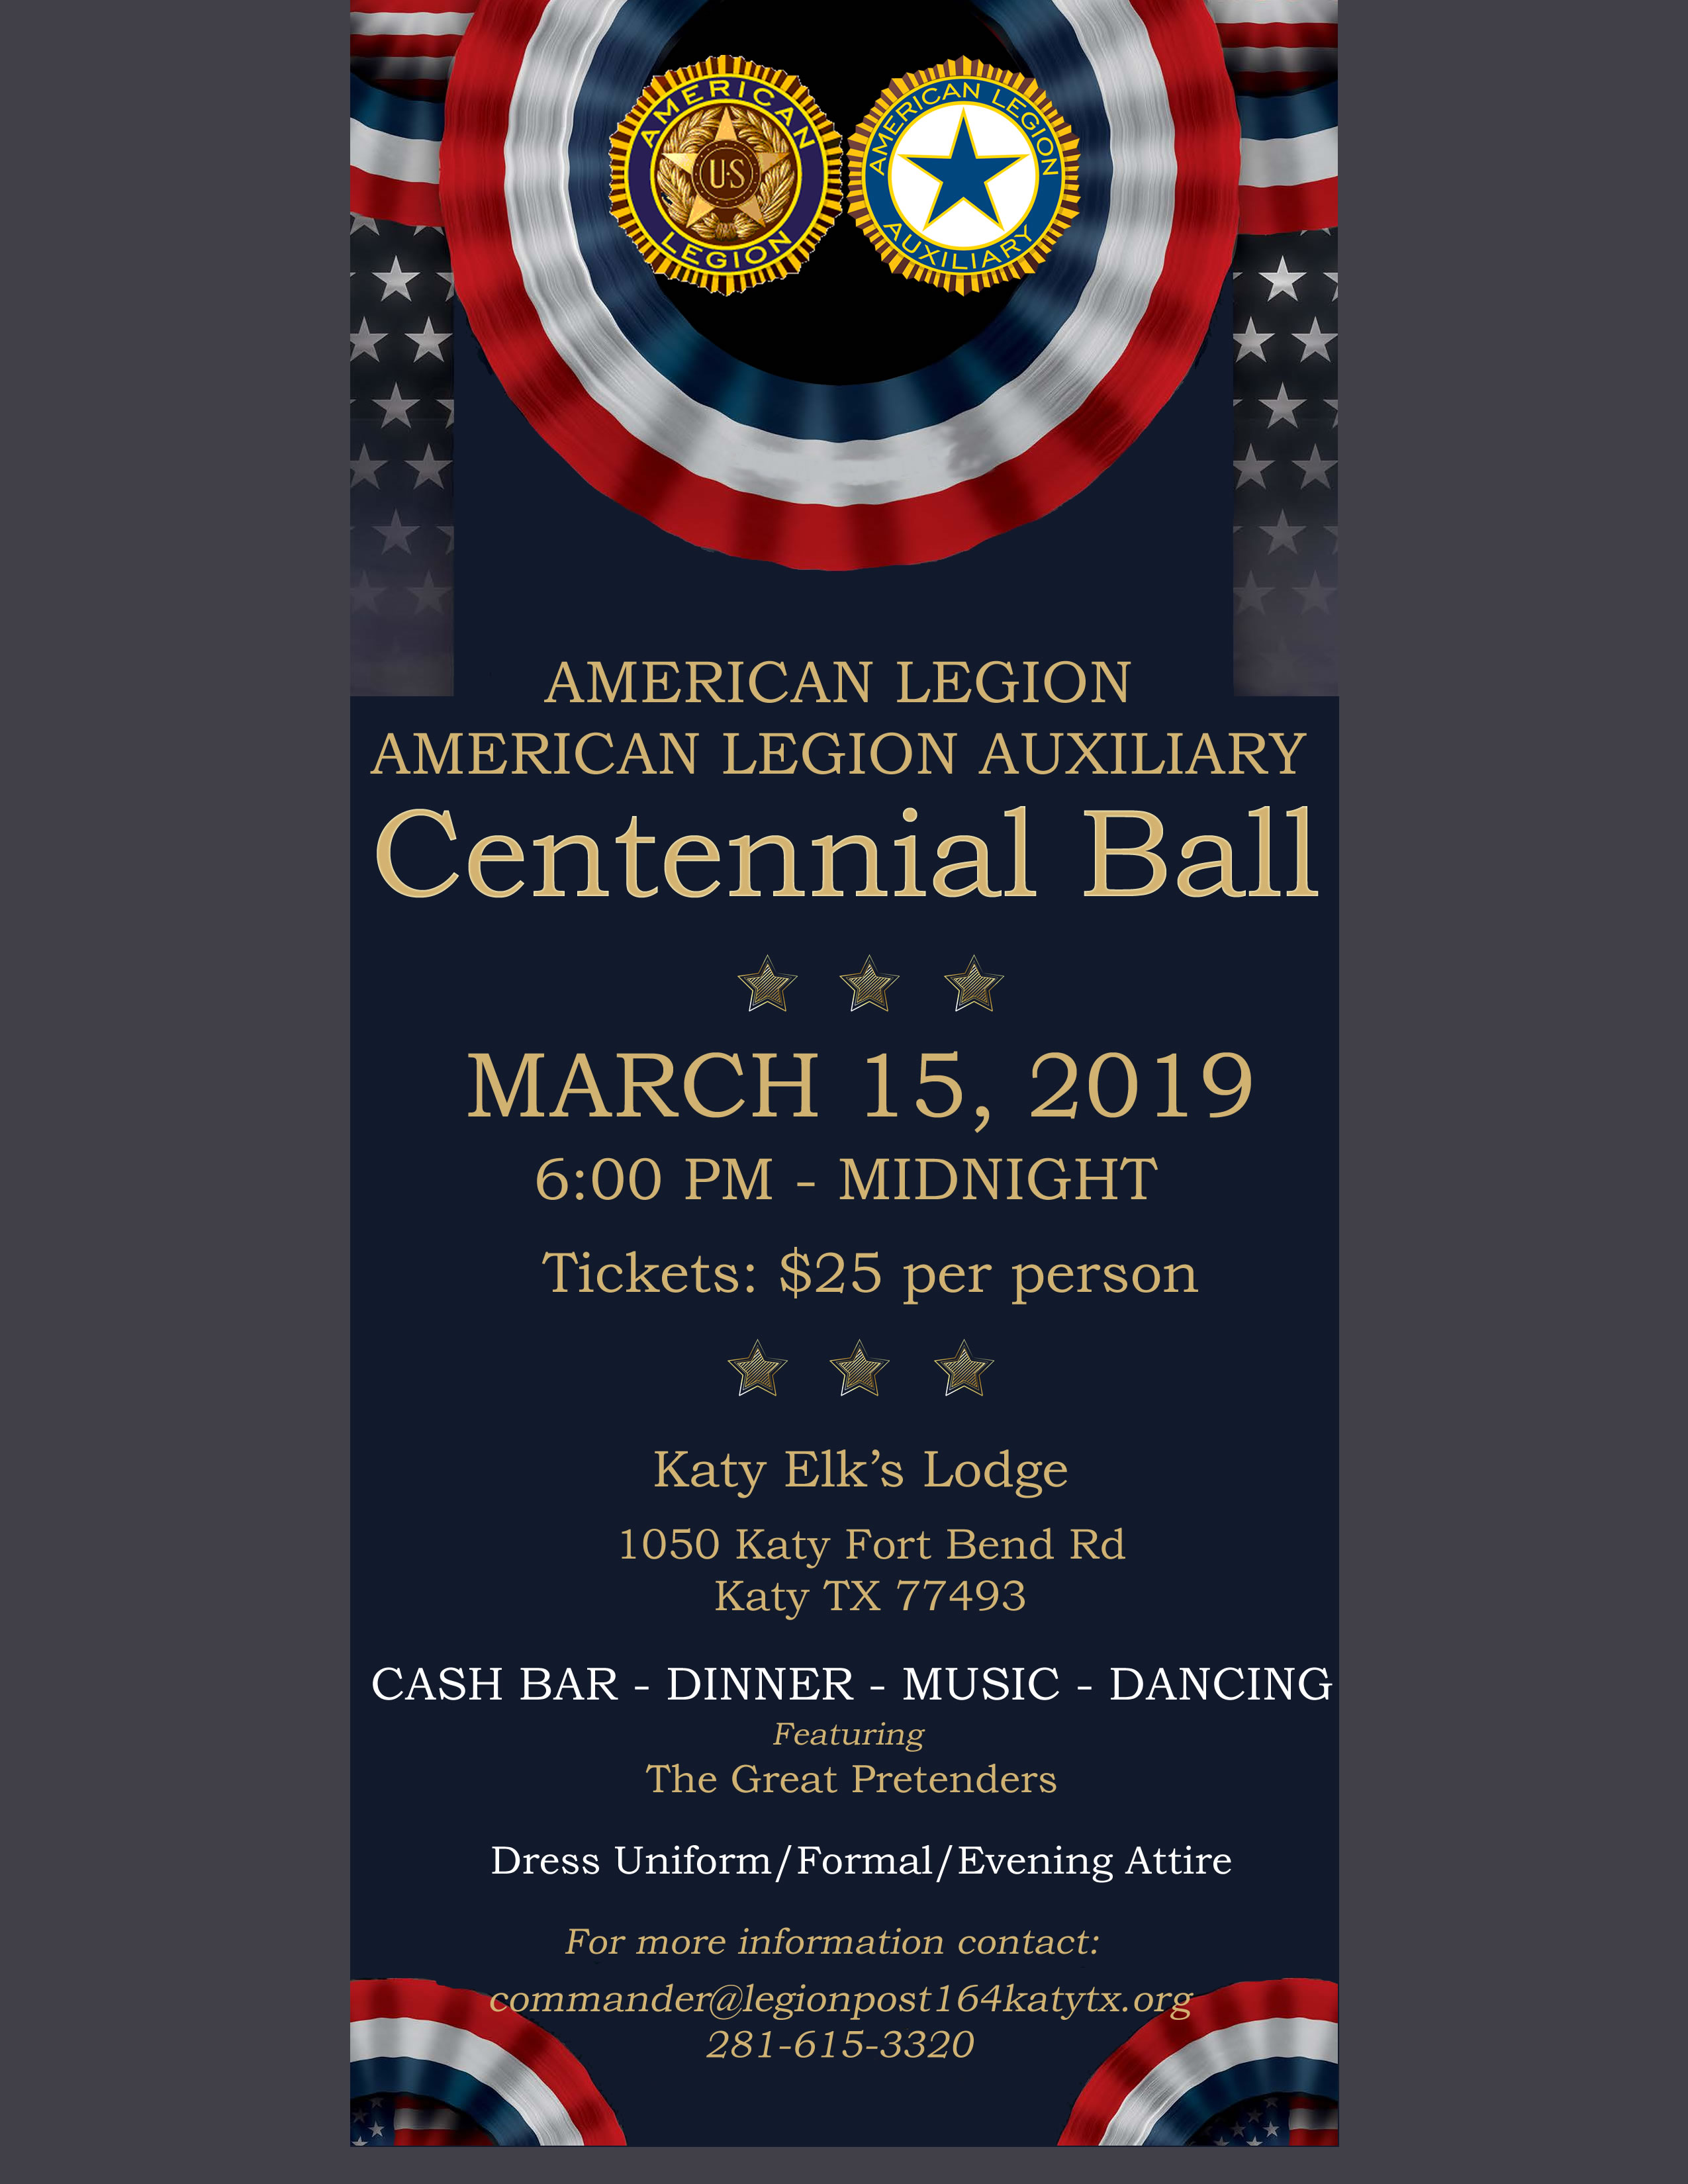 Centennial Ball March 15, 2019